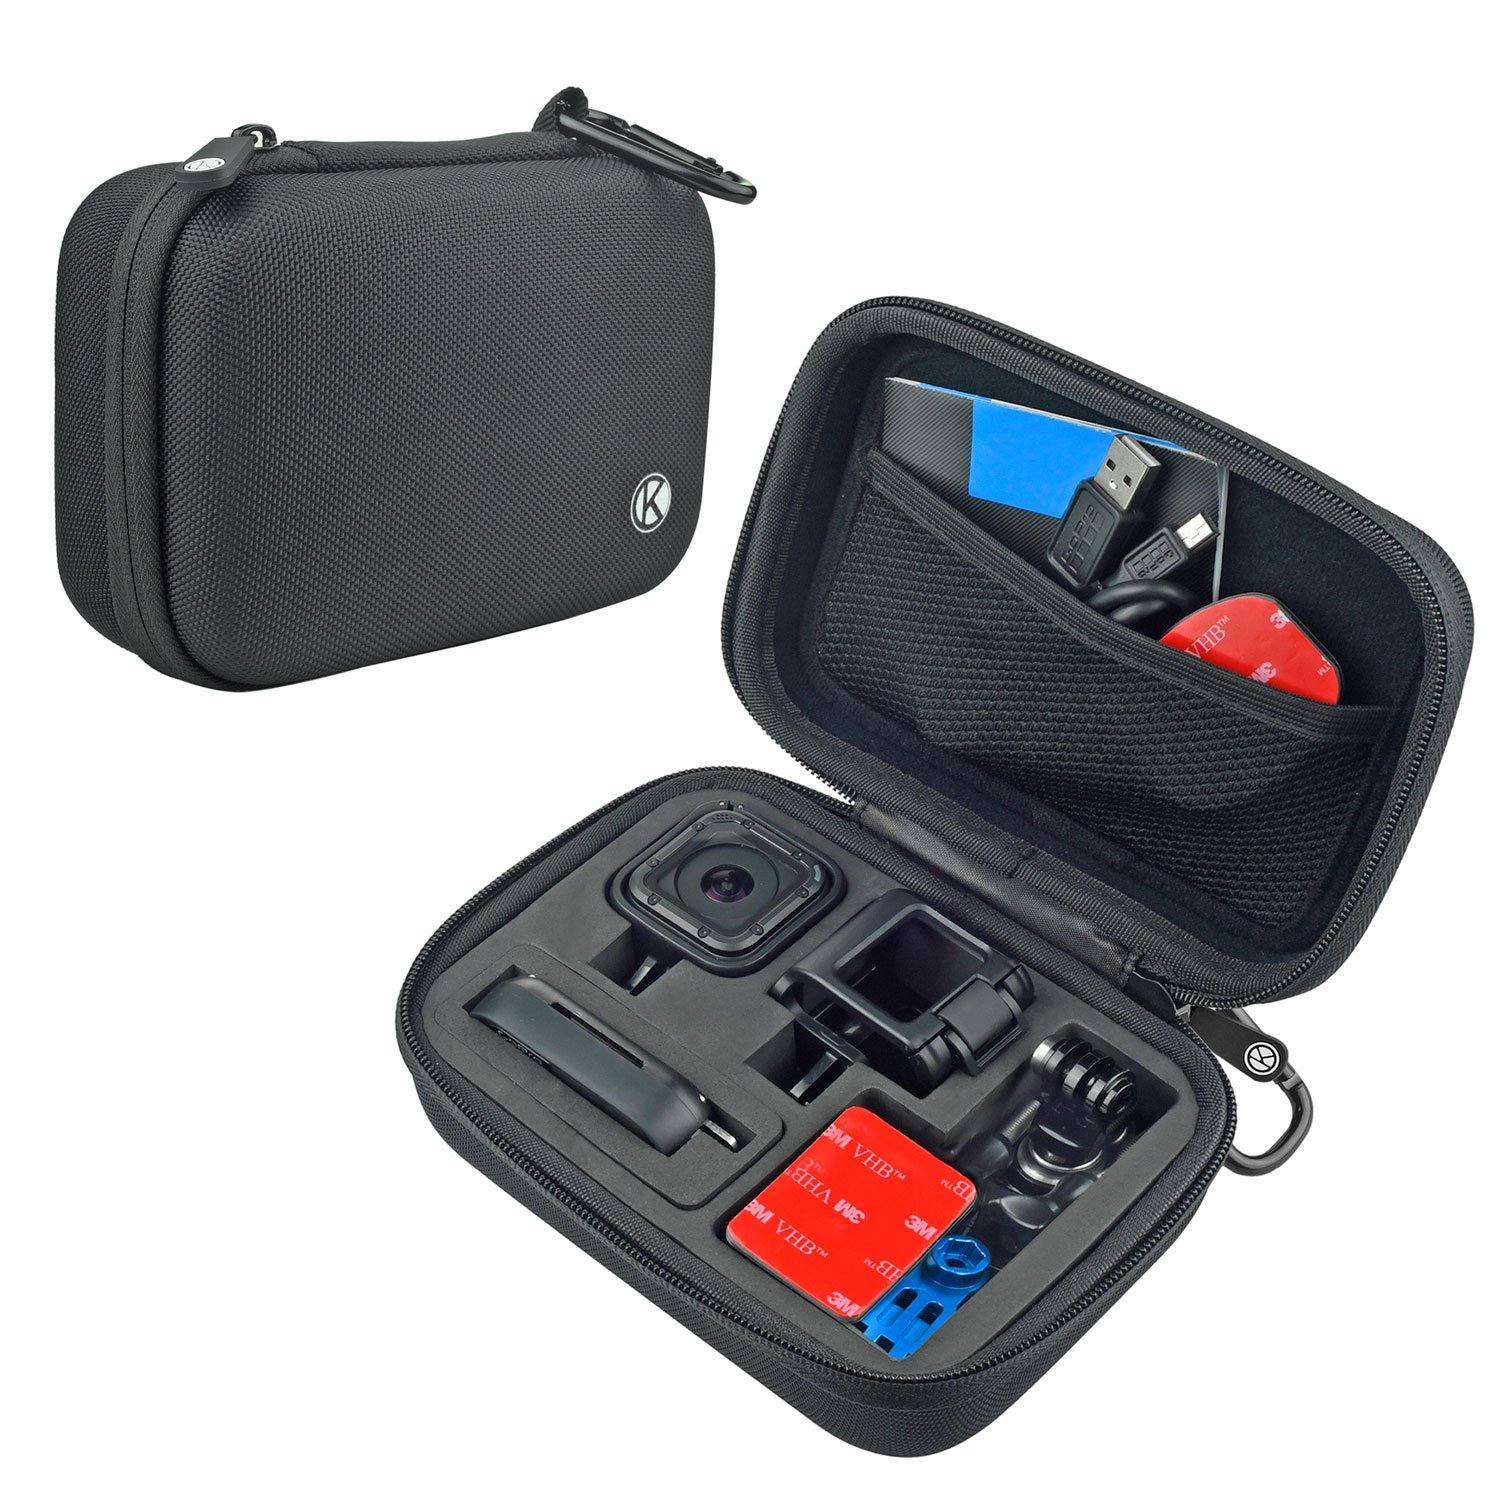 CamKix Camera and Accessory Case for GoPro HERO 5 / 4 Session Camera - Ideal for Travel or Storage - Complete Protection - Perfect Fit - Carabiner and Microfiber Cleaning Cloth (ONLY FOR HERO SESSION) by CamKix